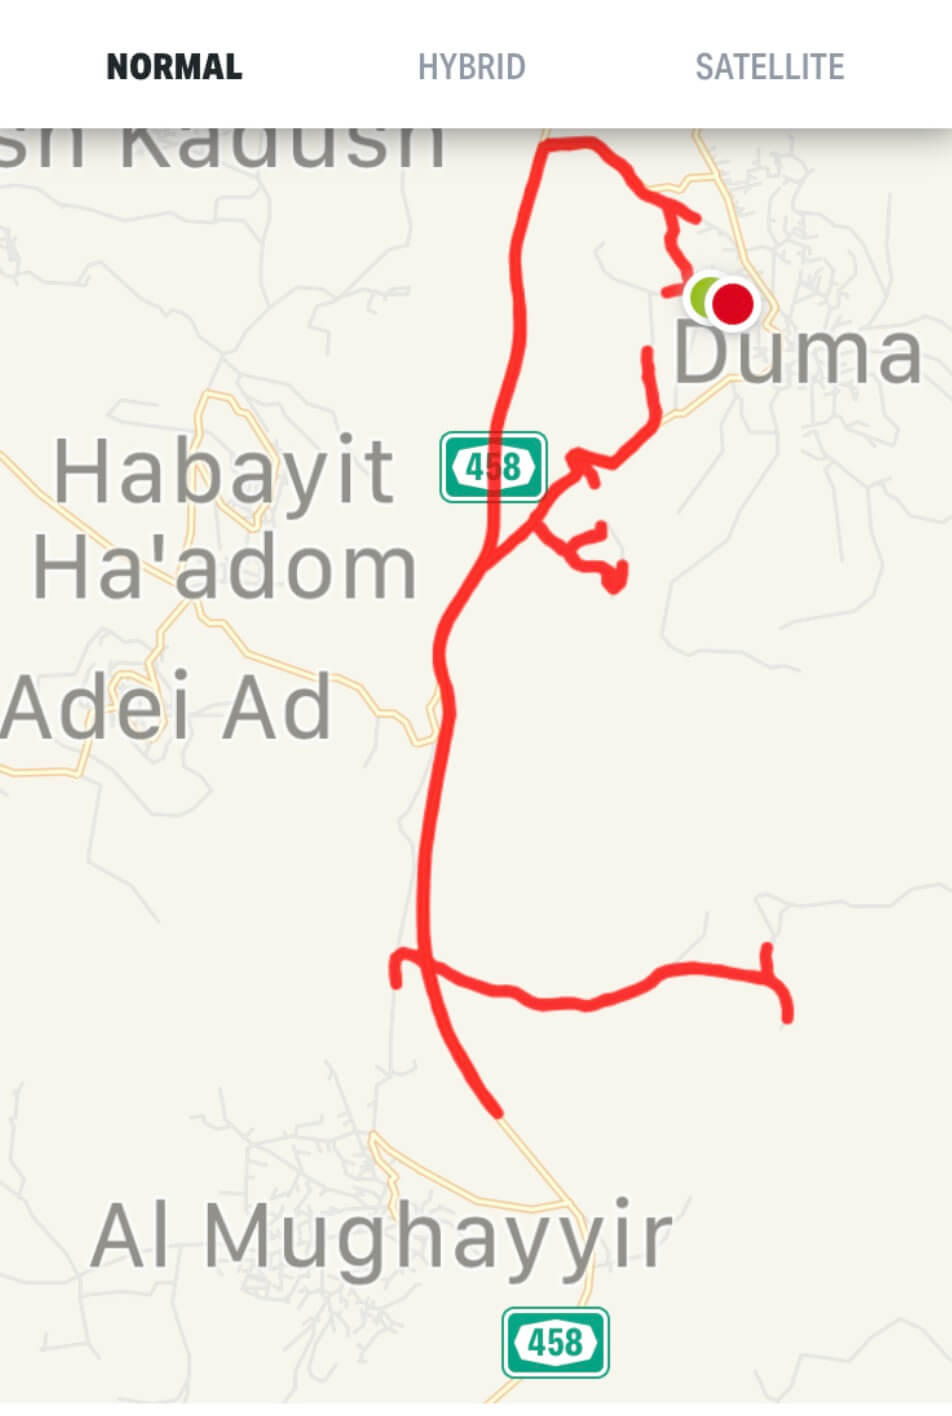 Route of Marlowe's training run from Duma to Mughayyir.